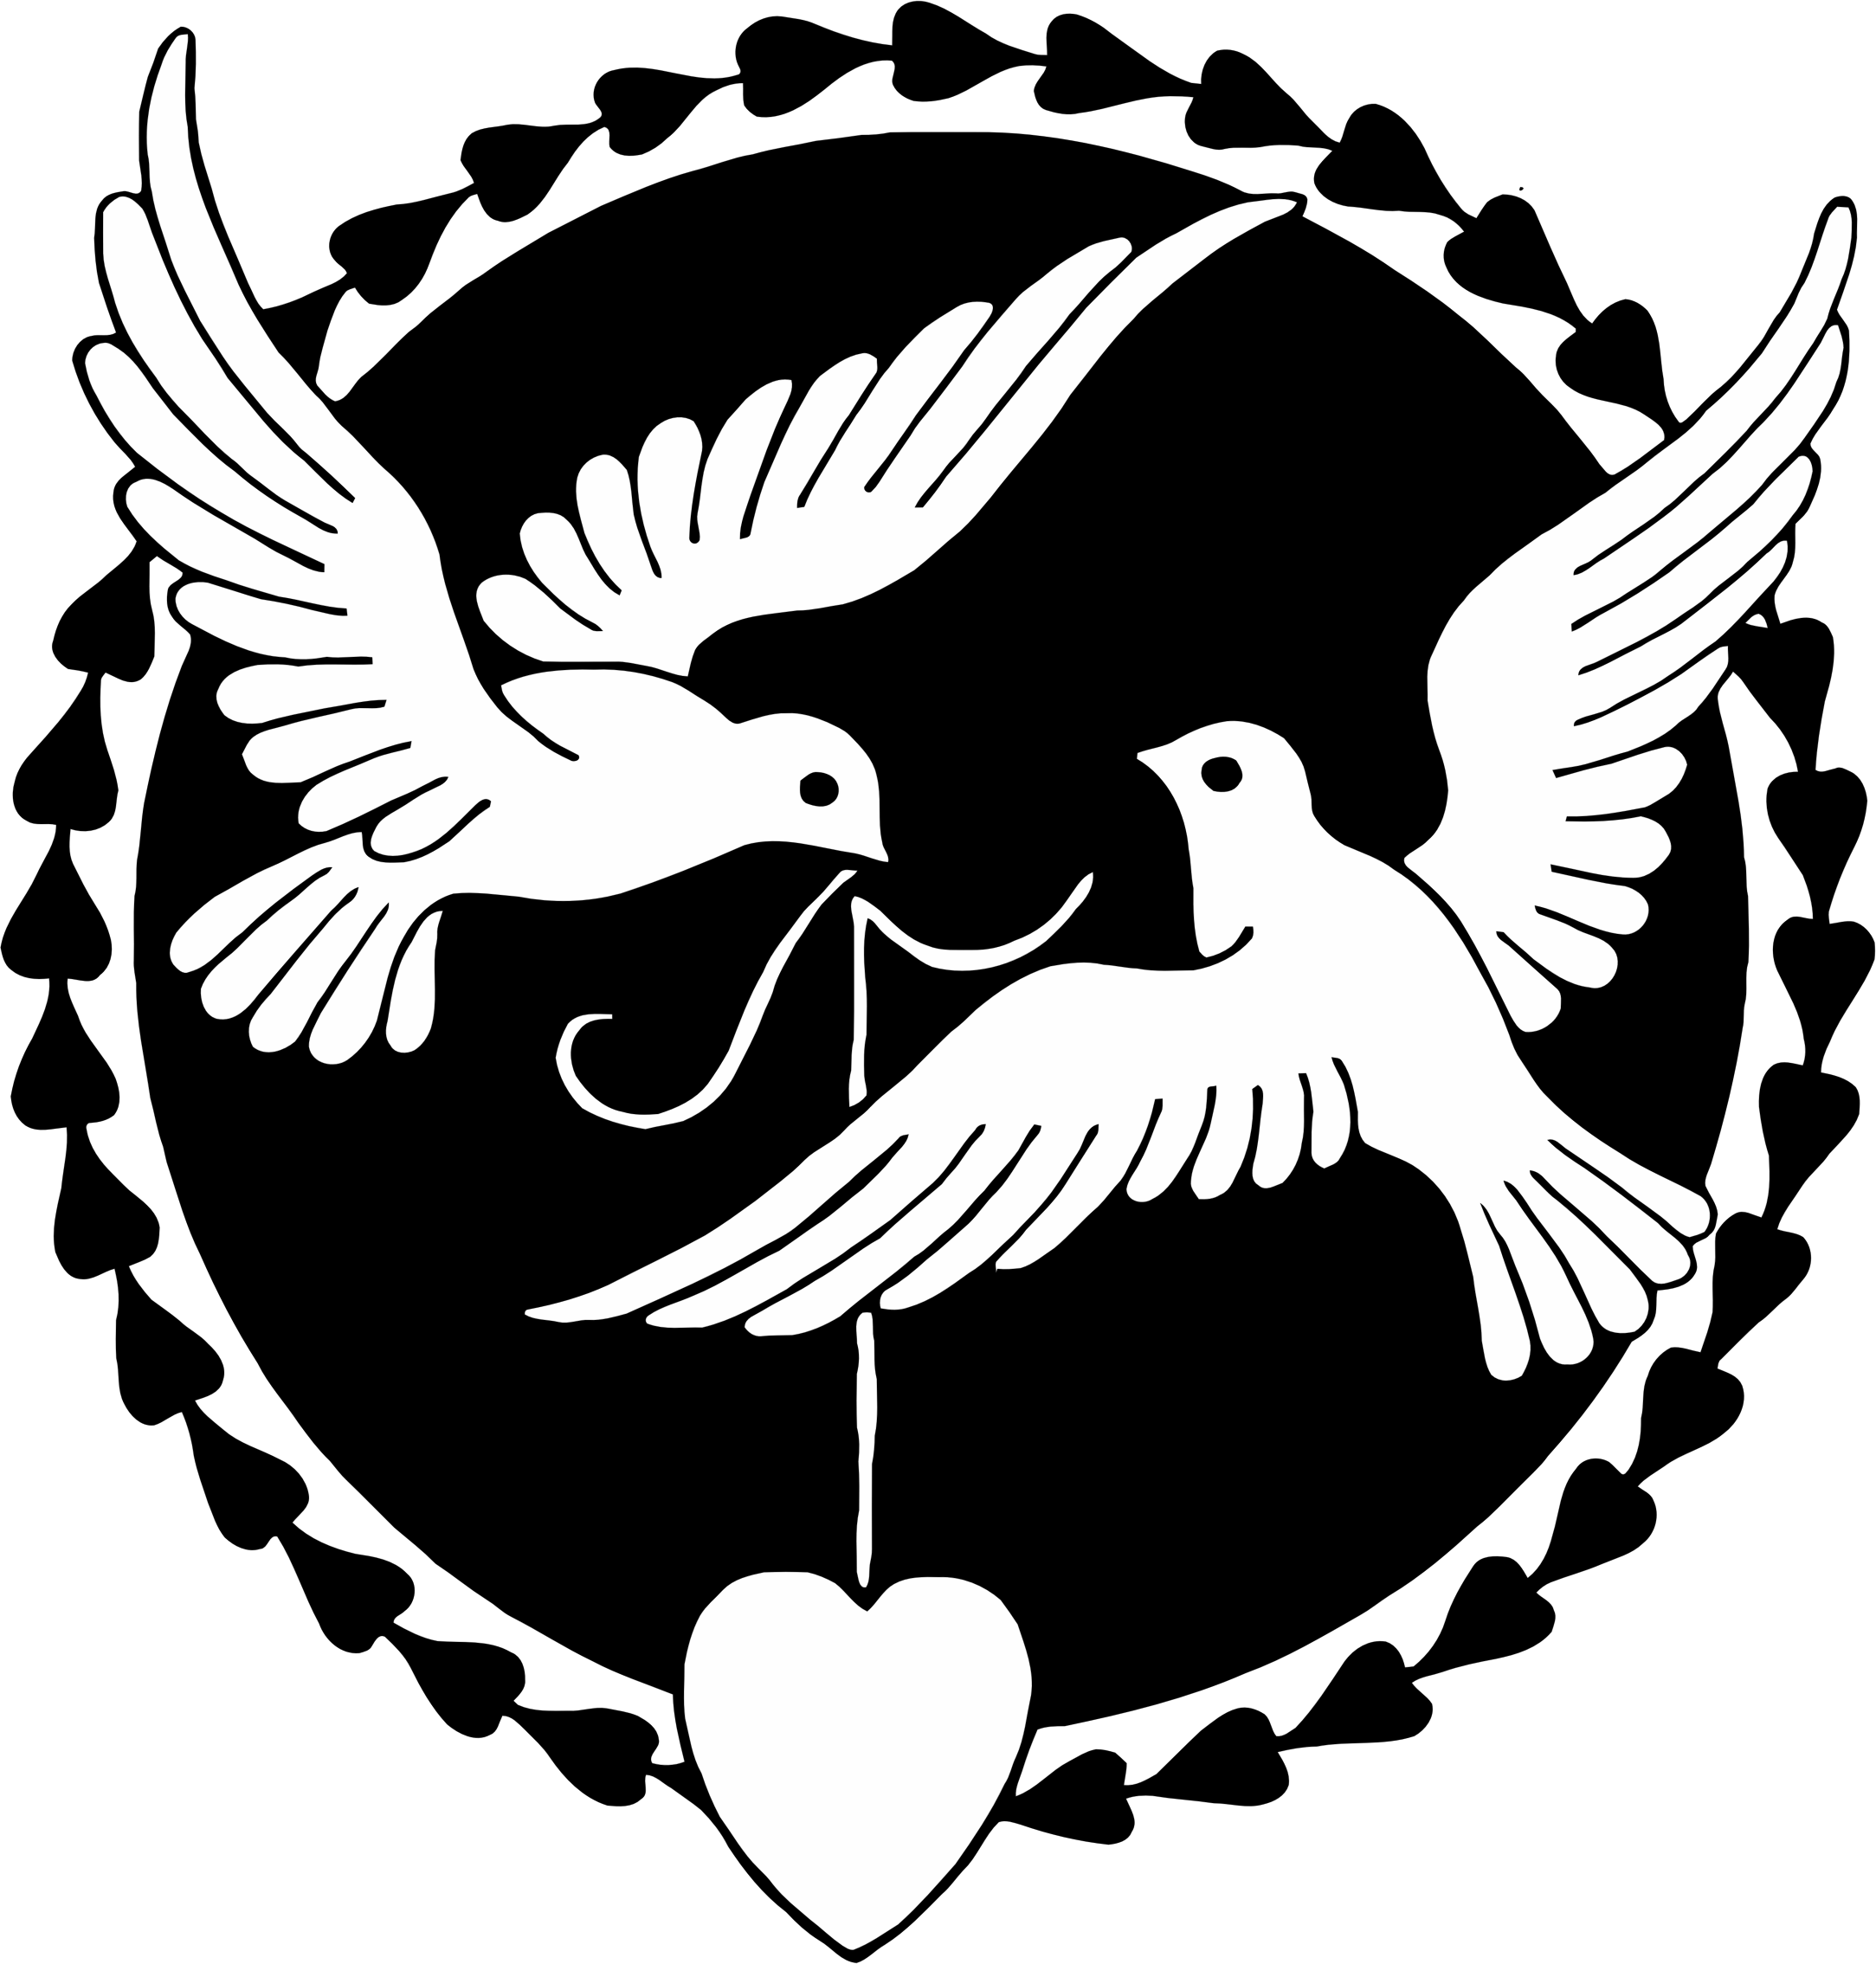 Love Doves by GDJ